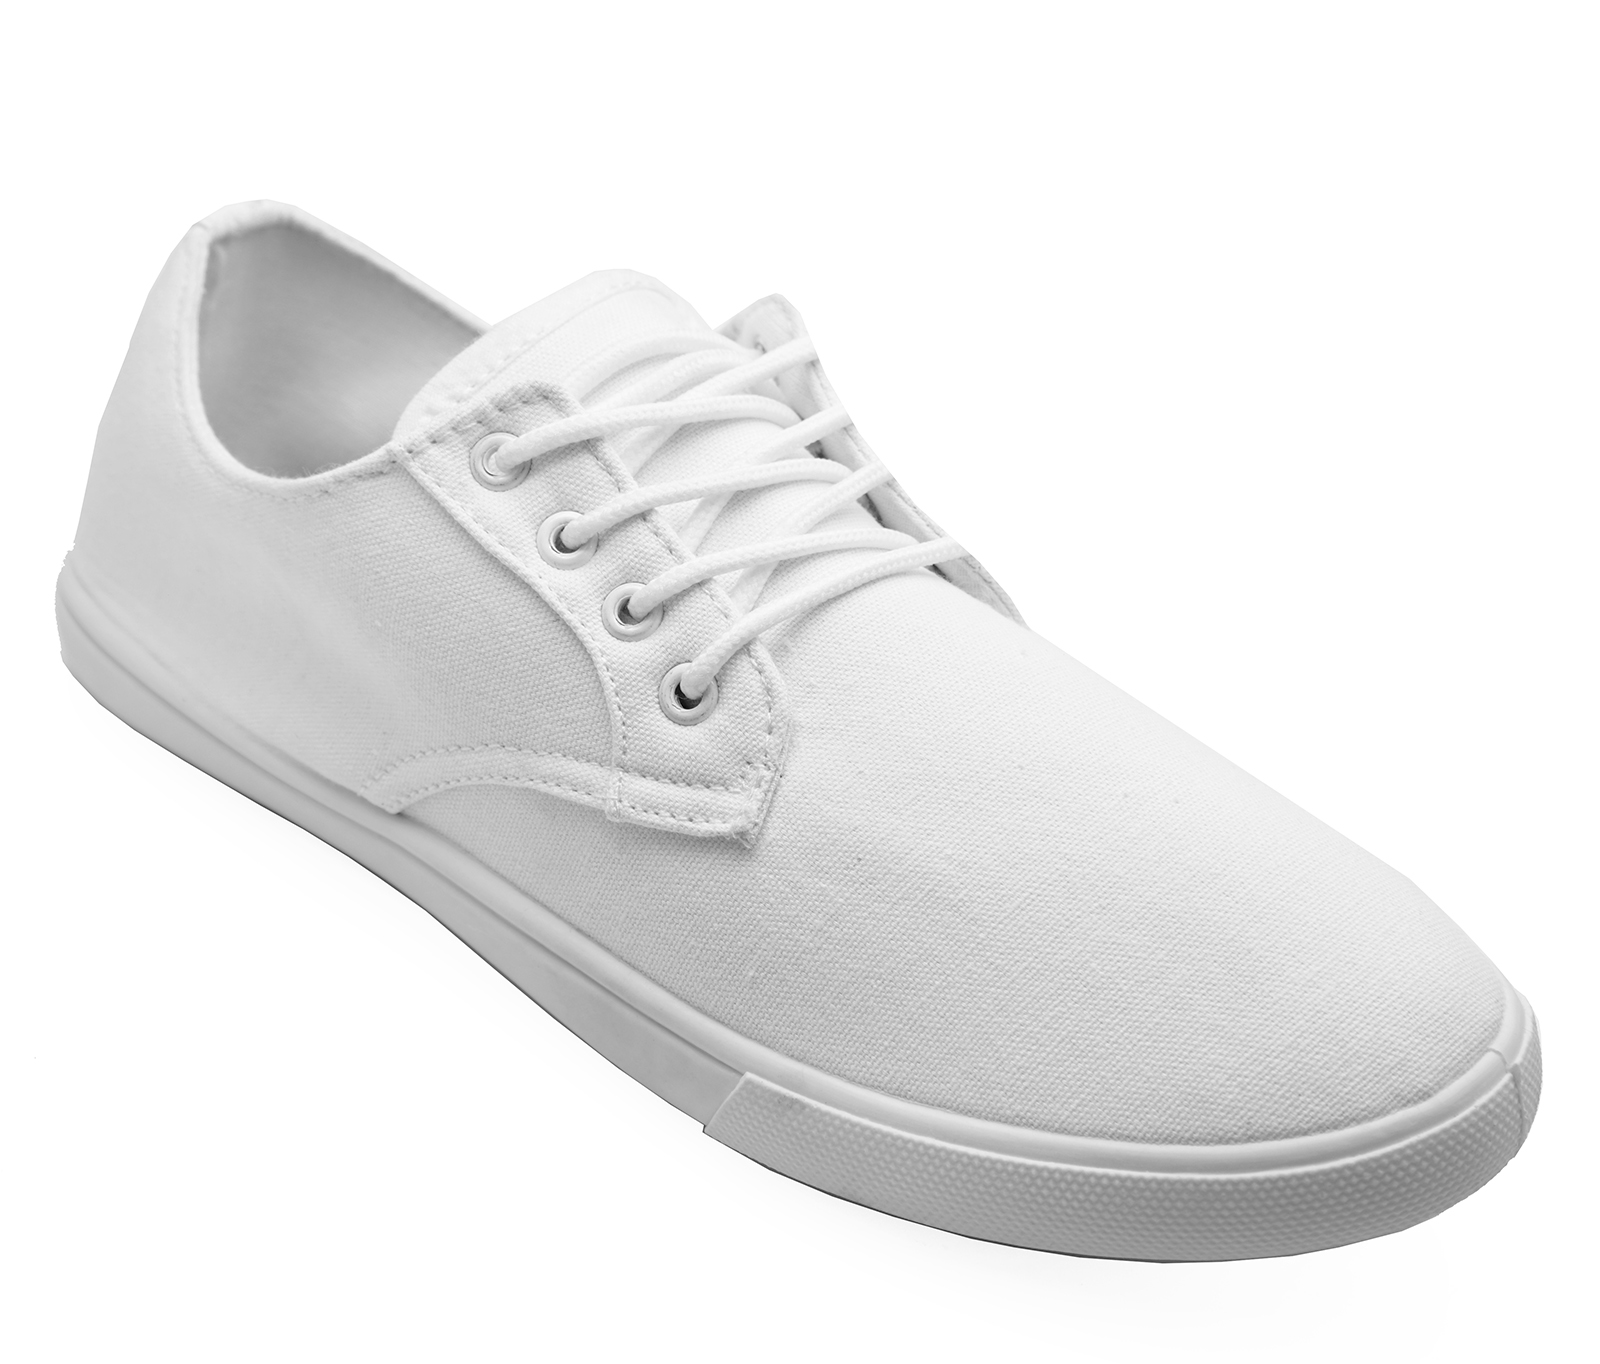 MENS-LACE-UP-WHITE-CANVAS-FLAT-TRAINER-PLIMSOLL-PUMPS-CASUAL-SHOES-SIZES-6-12 thumbnail 17